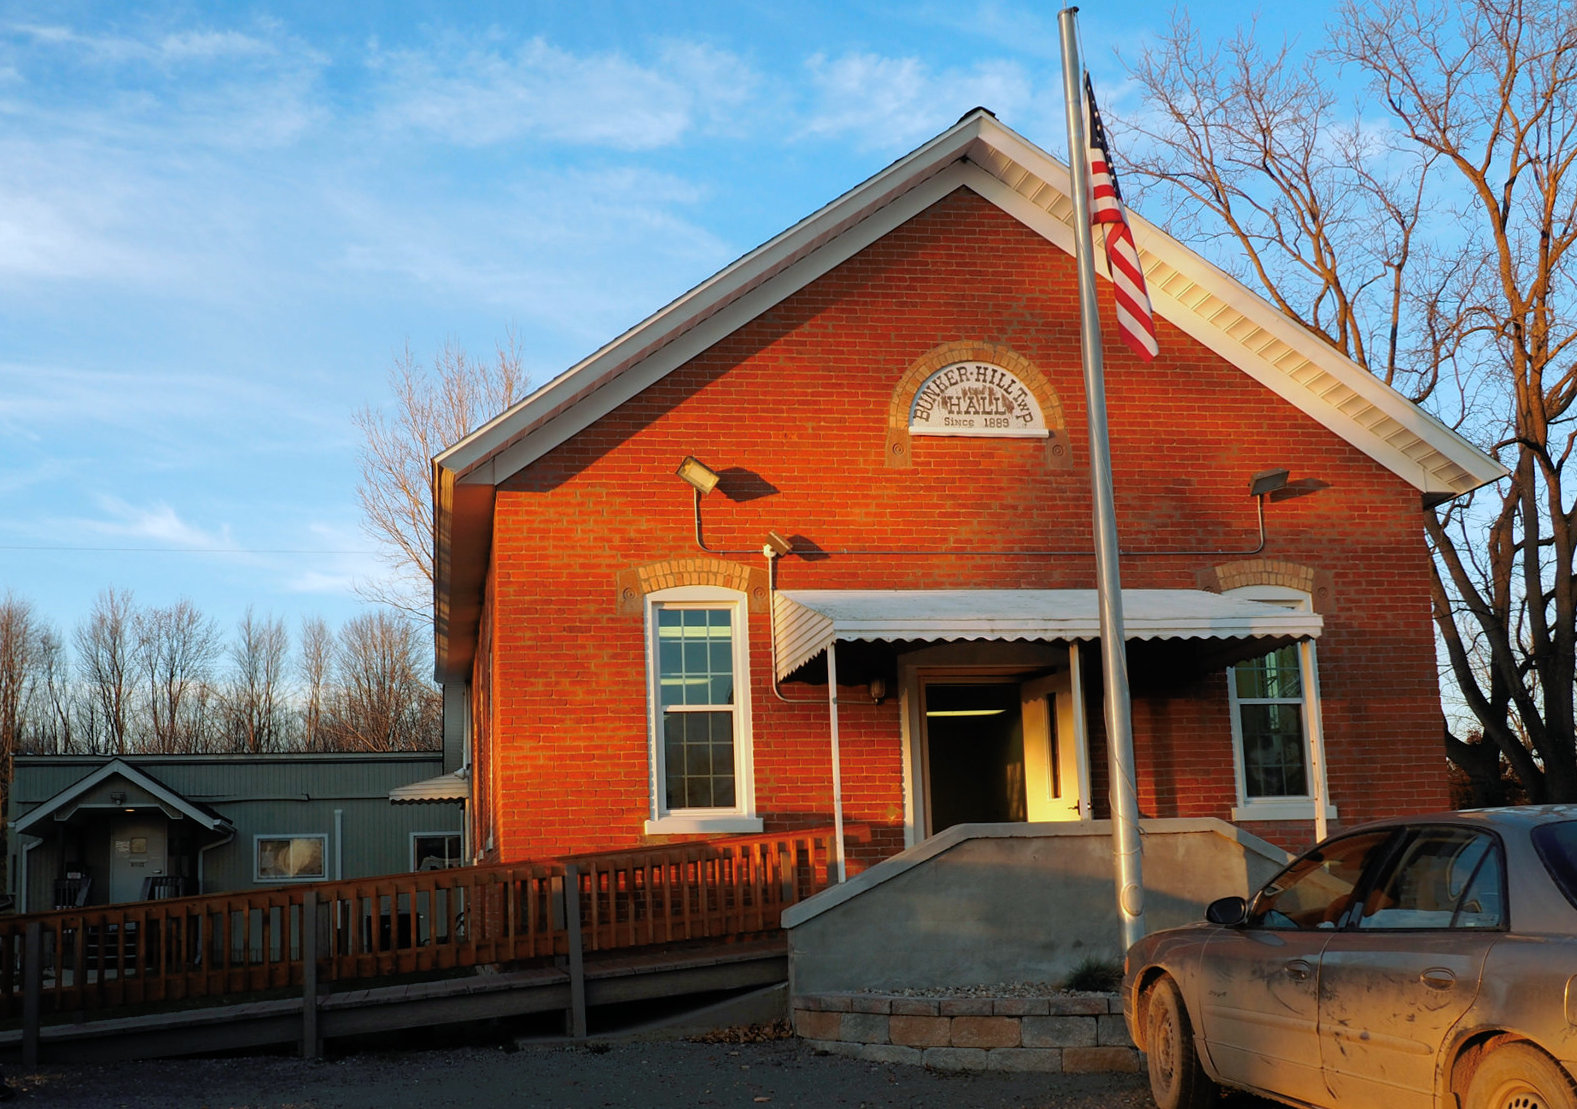 Bunker Hill Township Hall, 12 November 2016. Township offices are in the gray building behind it.